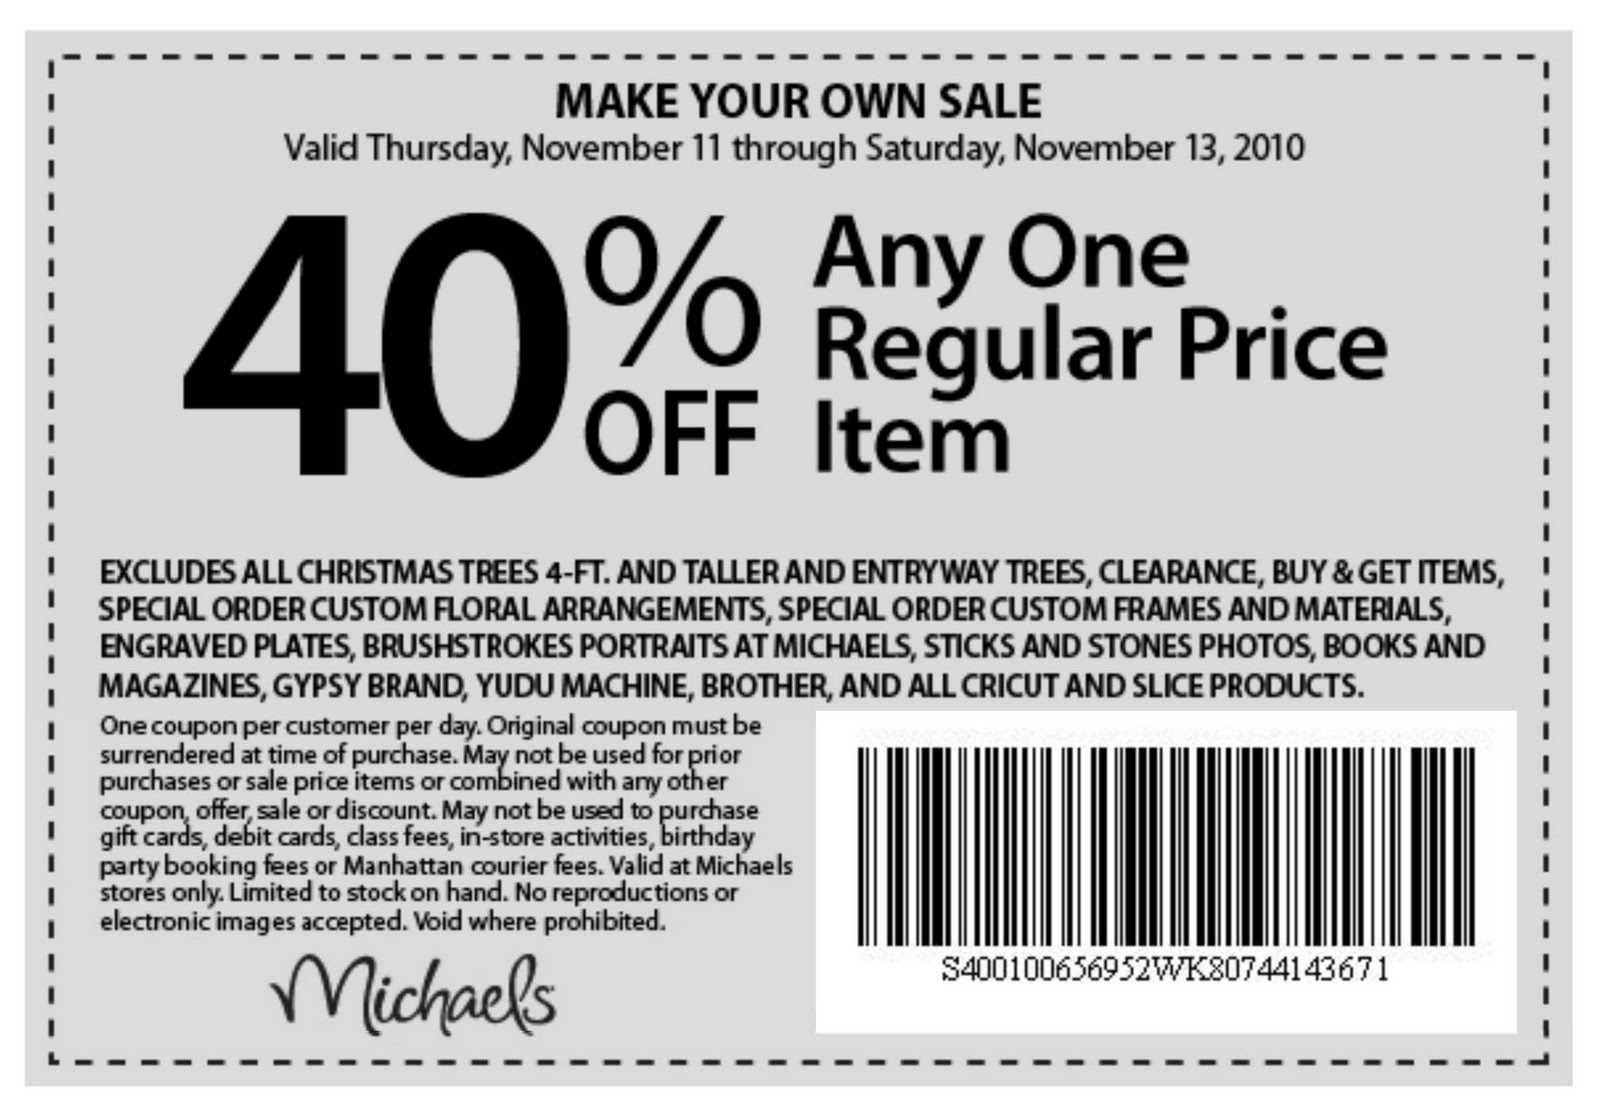 Michael's Coupons